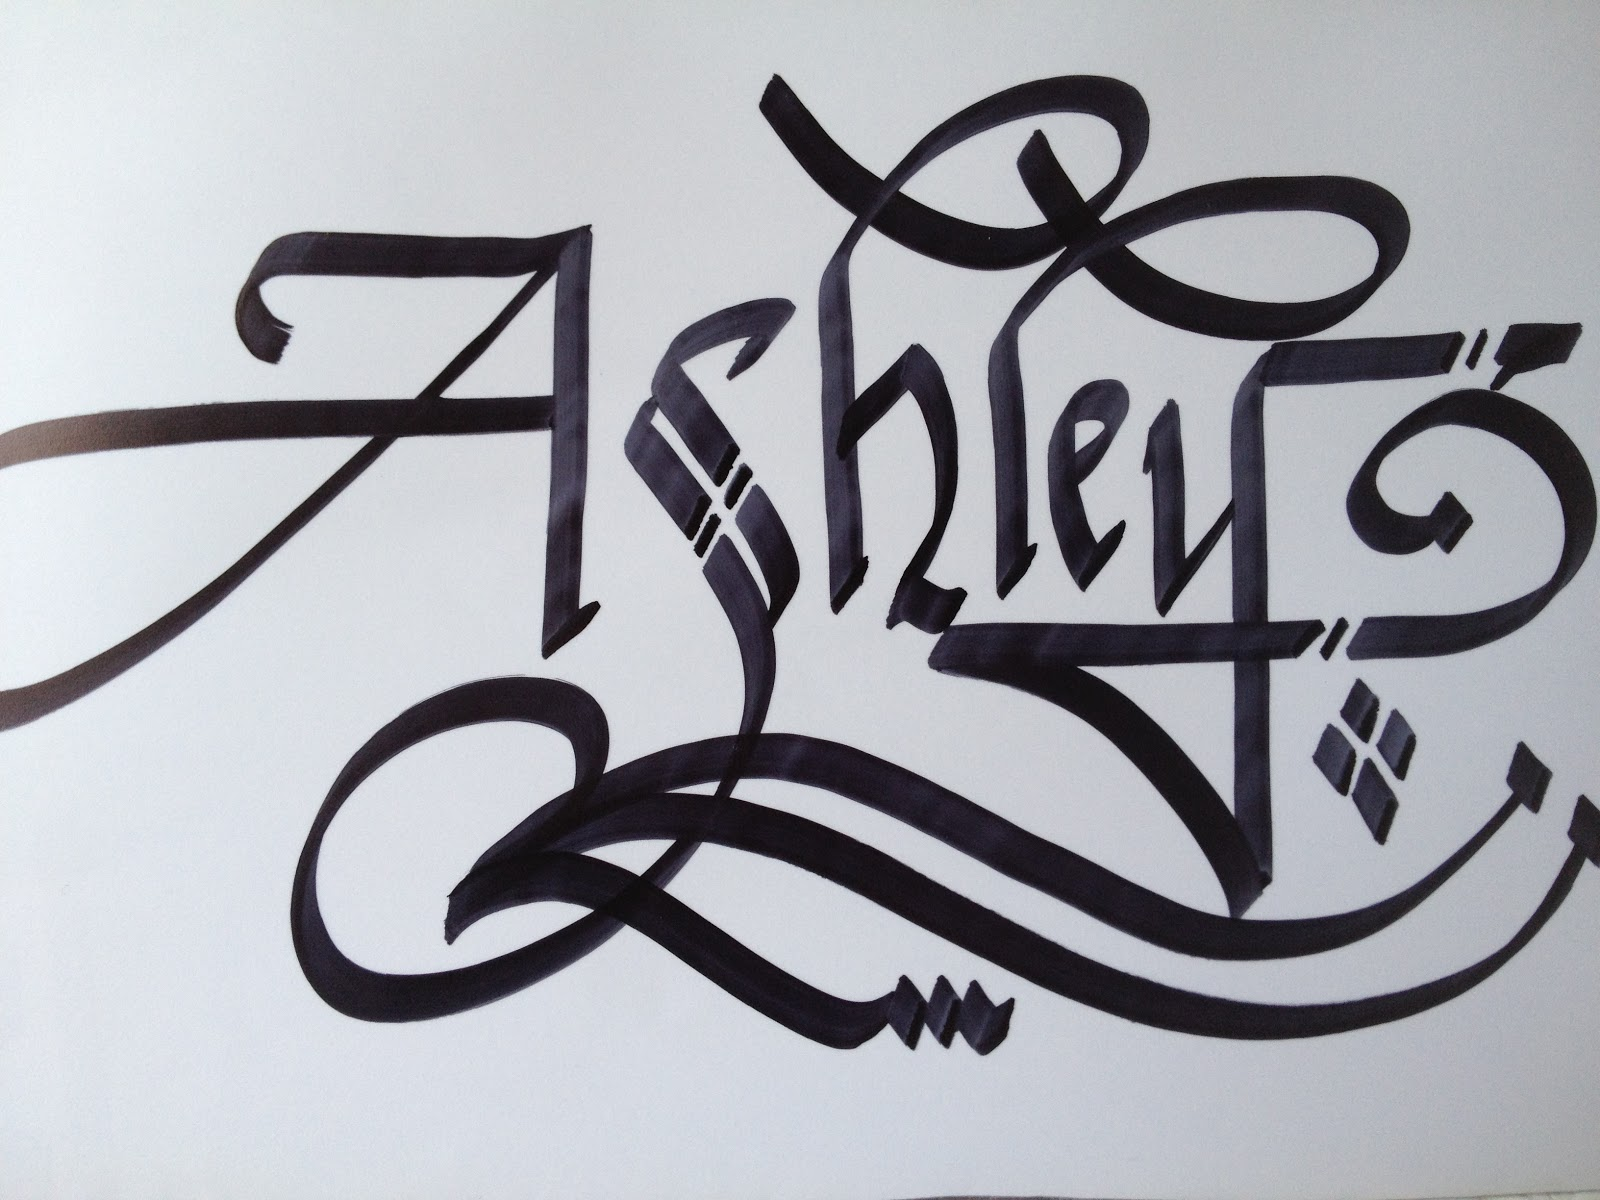 Calligraphy art girl names in calligraphy 1 ashley adele Caligraphy i